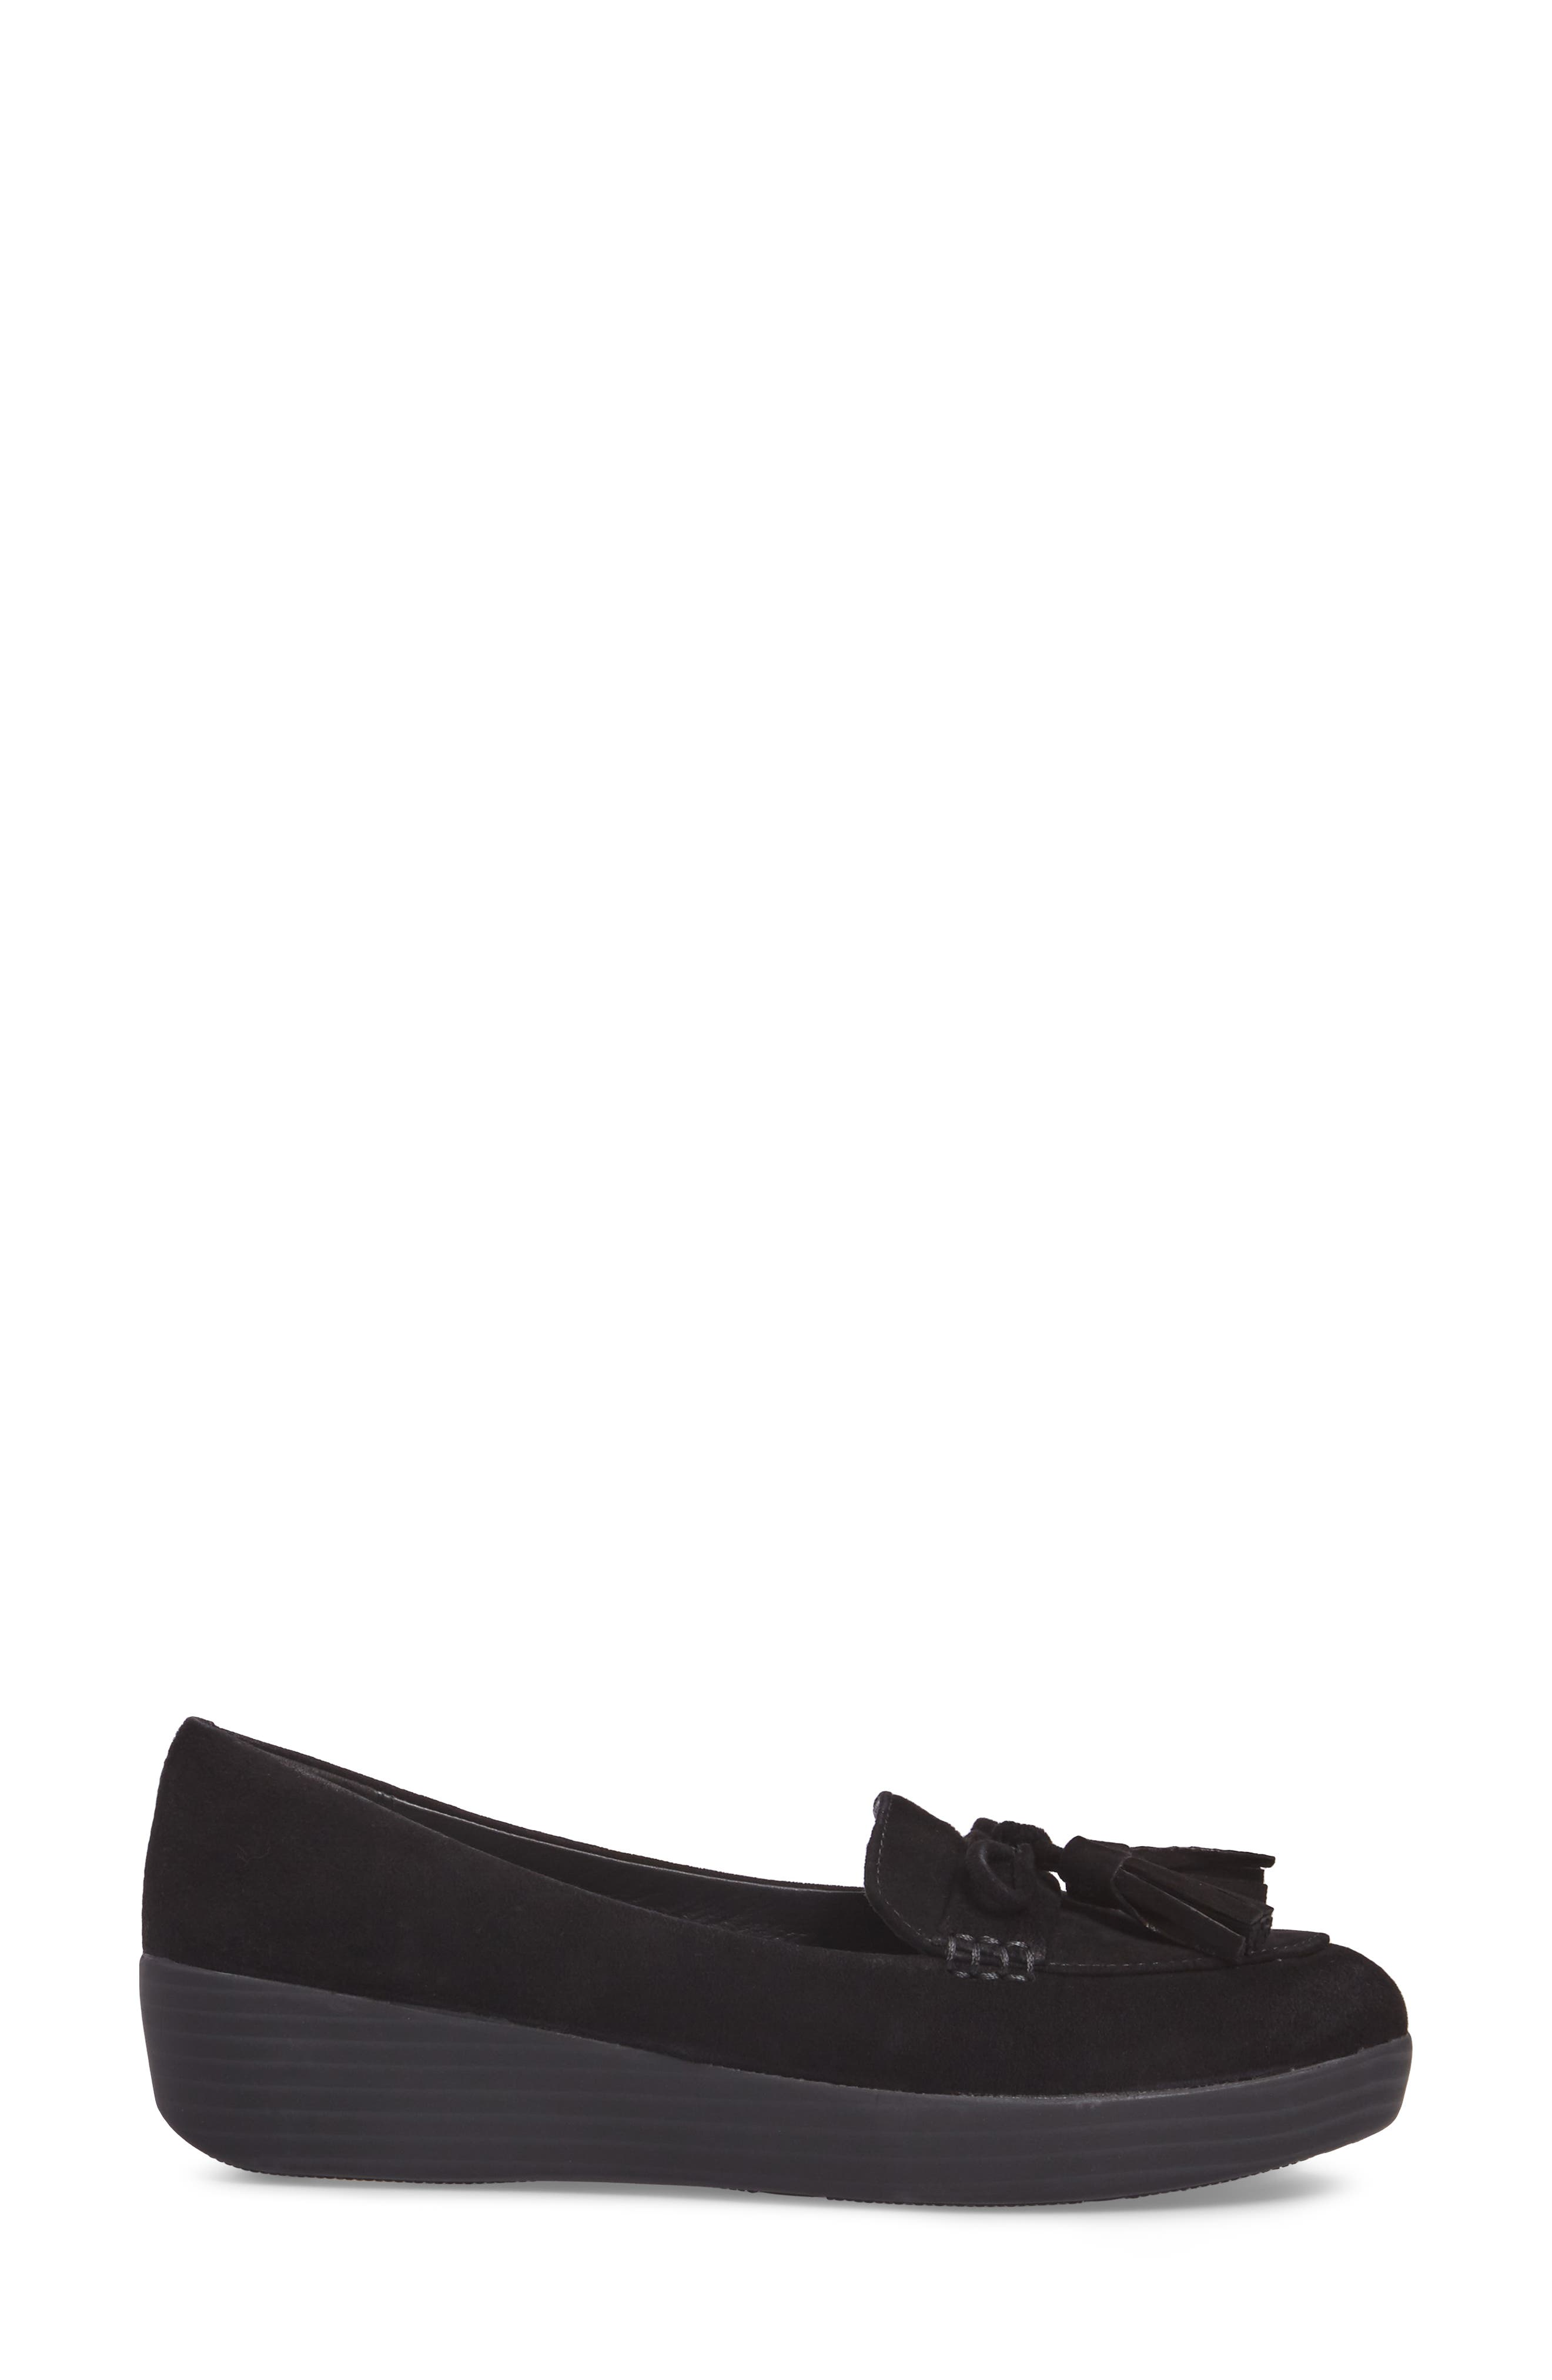 Tassel Bow Sneakerloafer<sup>™</sup> Water Repellent Flat,                             Alternate thumbnail 3, color,                             All Black